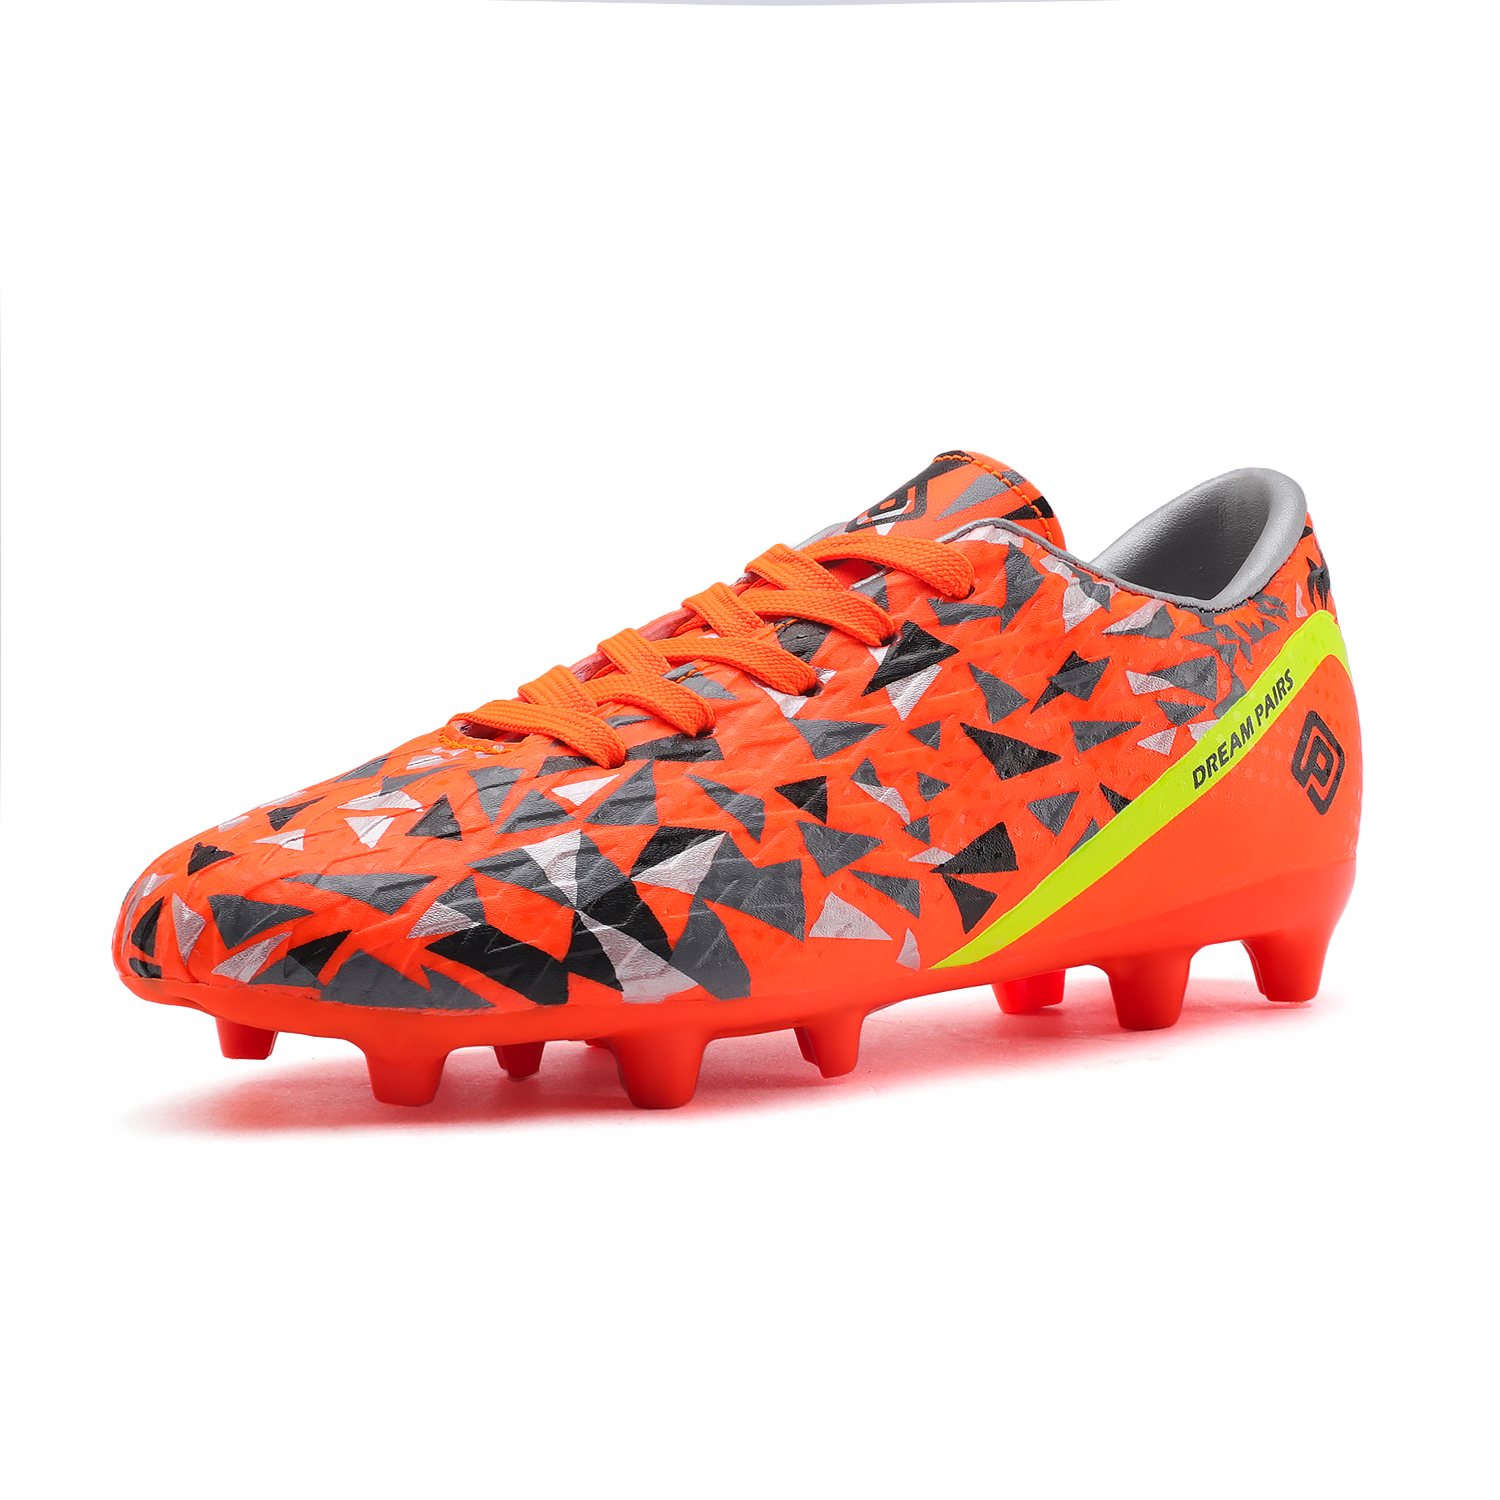 miniature 38 - Men's Kids Football Chaussures Crampons Football Indoor Sports Baskets Sneakers Fashion